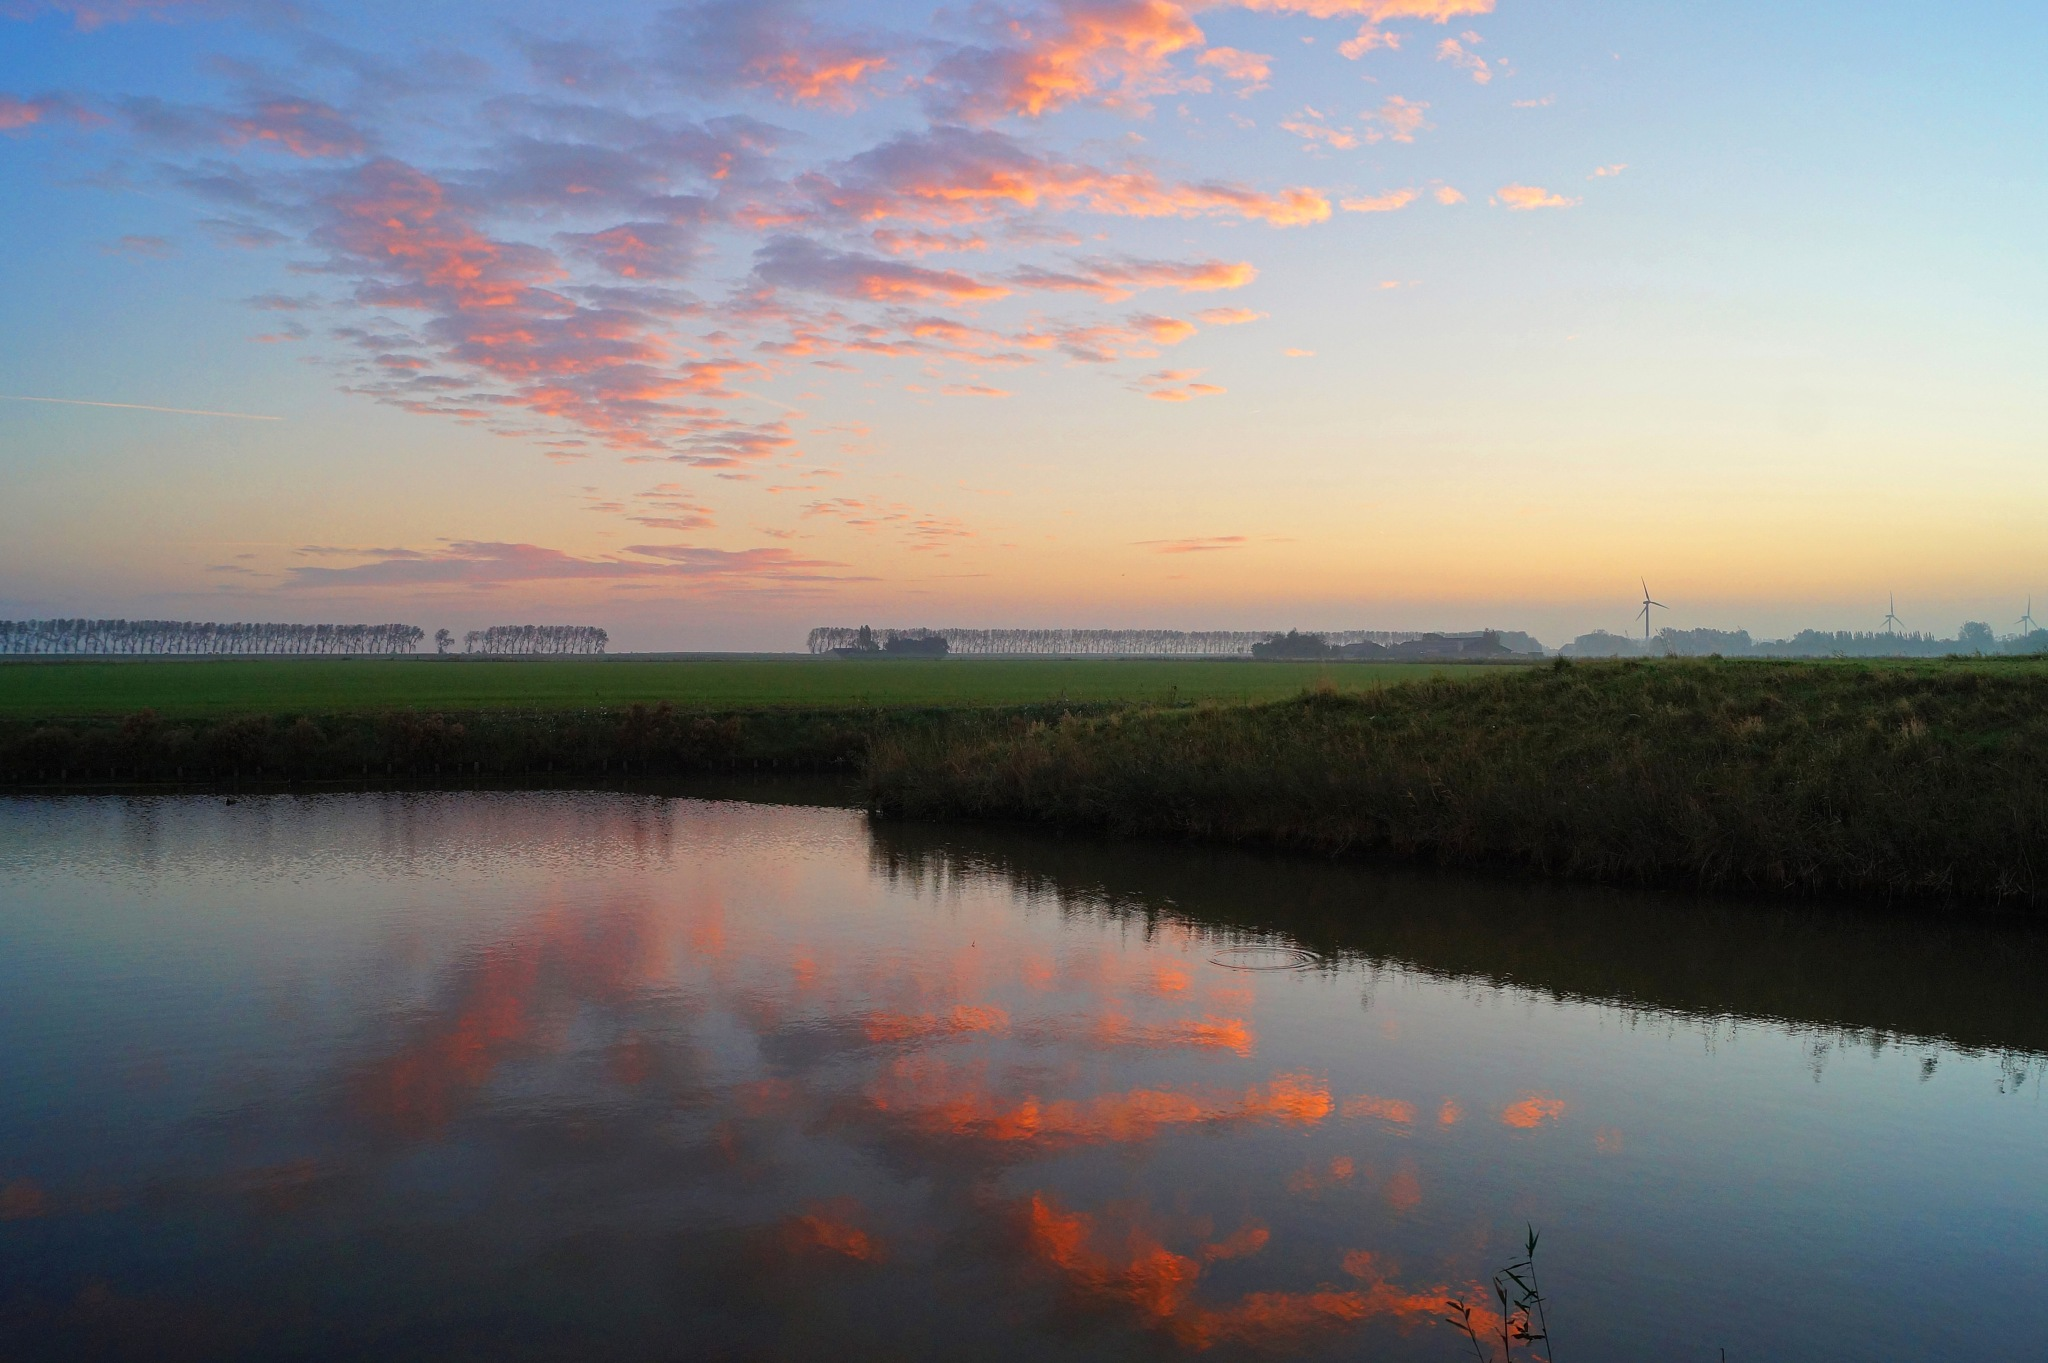 Sunrise Reflections by Marian Baay